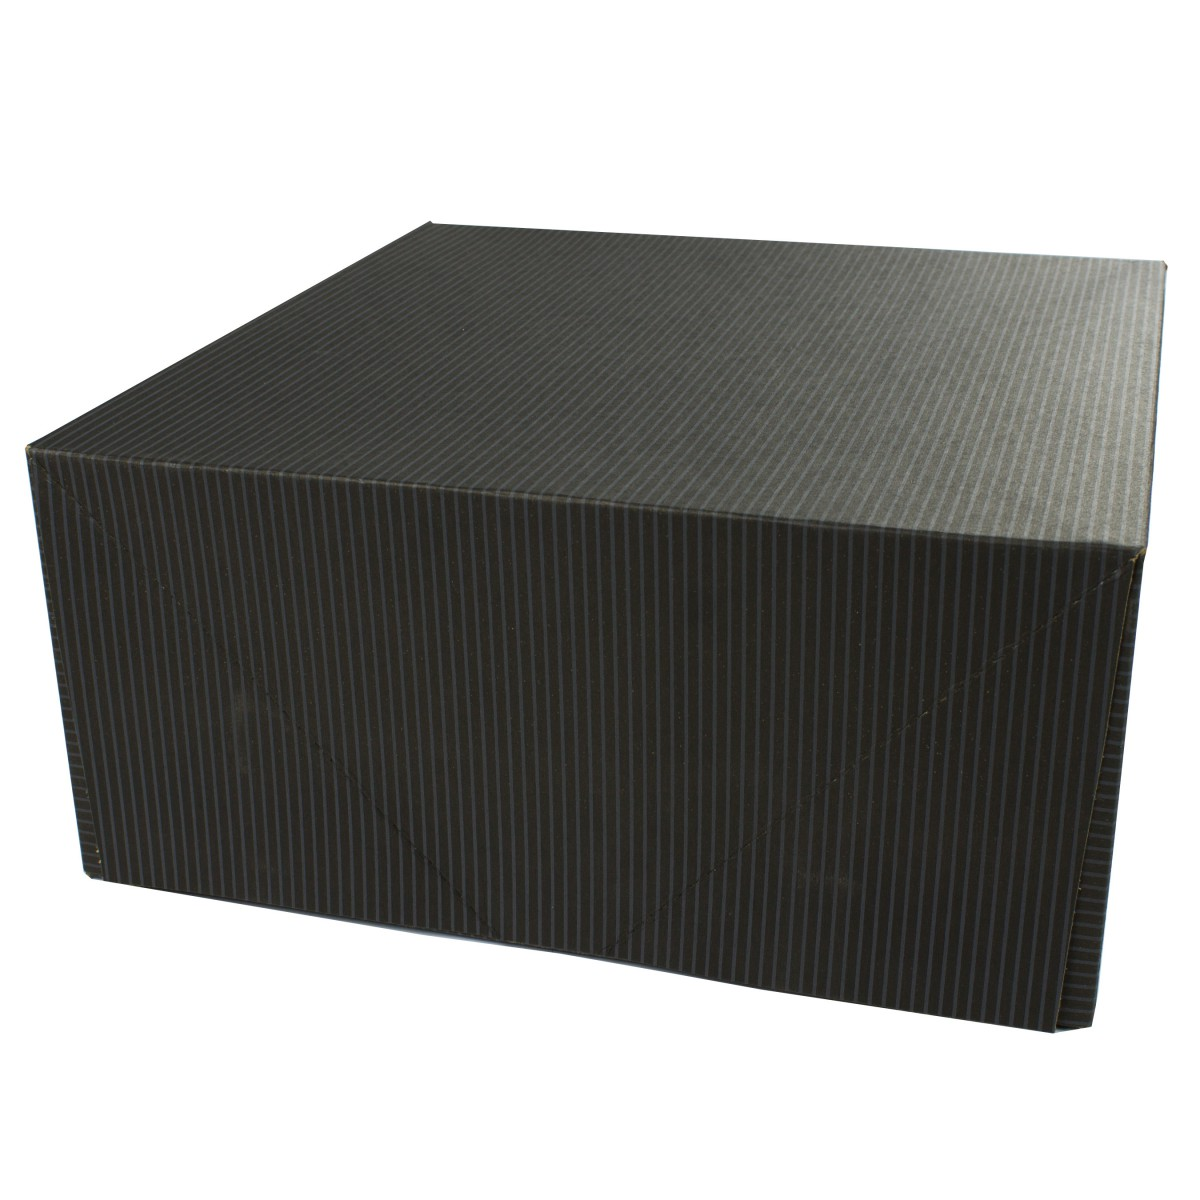 12 x 12 x 5.5 BLACK PINSTRIPE TWO-PIECE GIFT BOXES